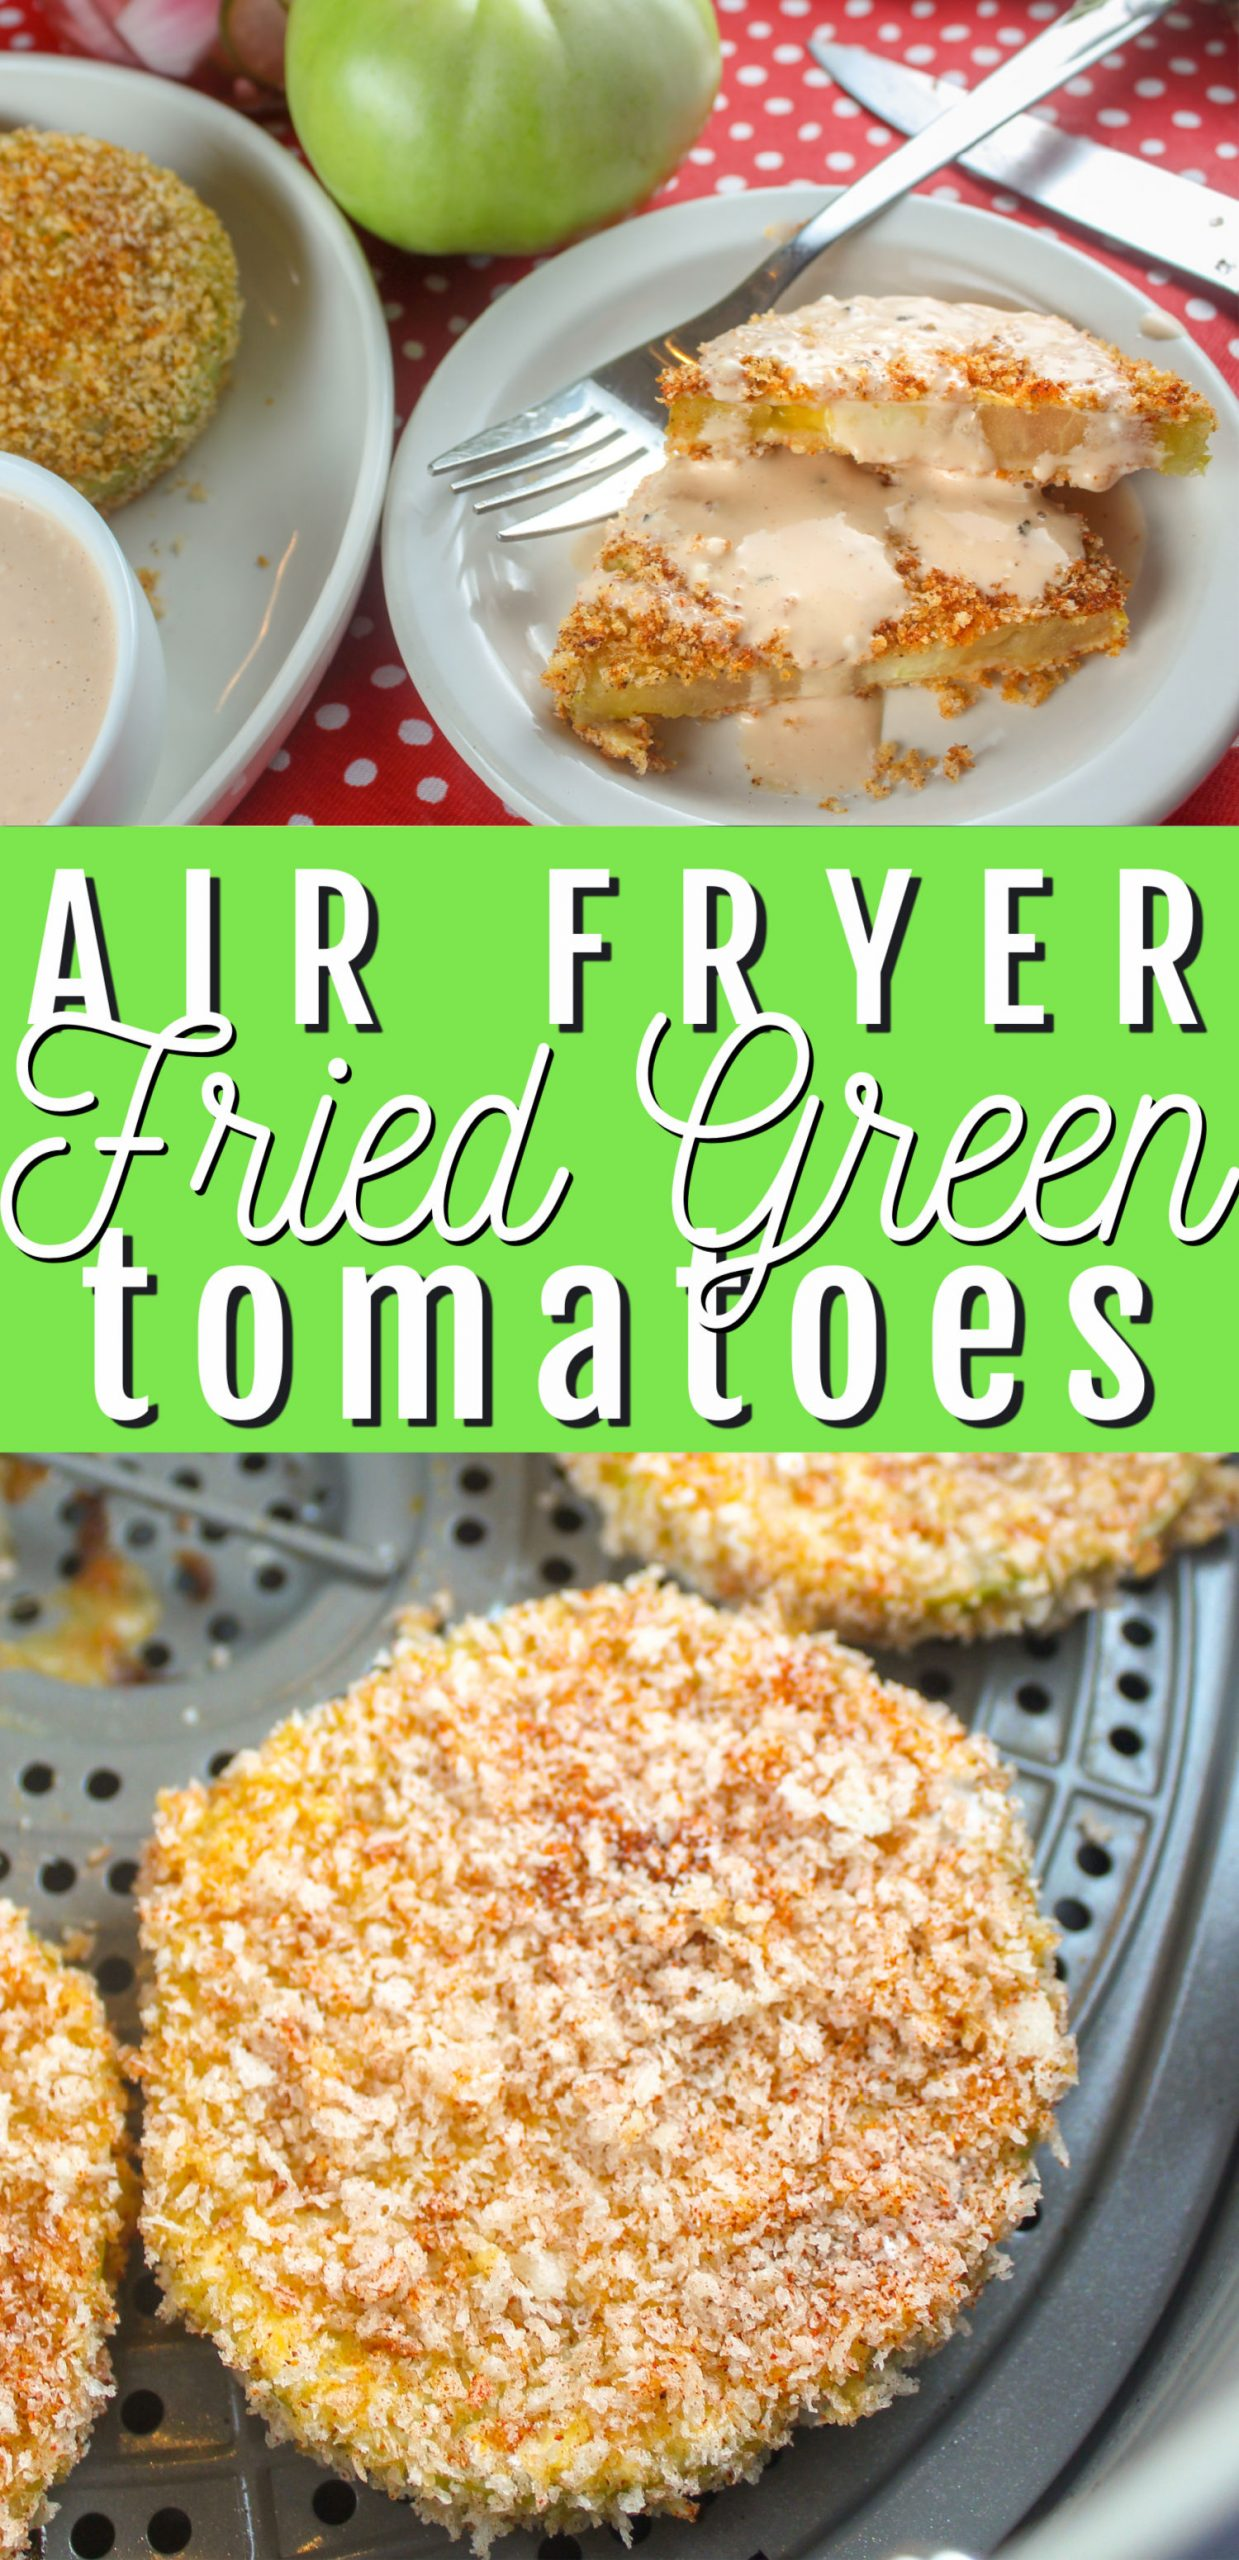 Fried Green Tomatoes are a staple in the south and I always make sure to snag some when I head to Alabama to visit my friends. I saw some beautiful green tomatoes at the farmers market and decided to make them at home - of course in my air fryer!  via @foodhussy